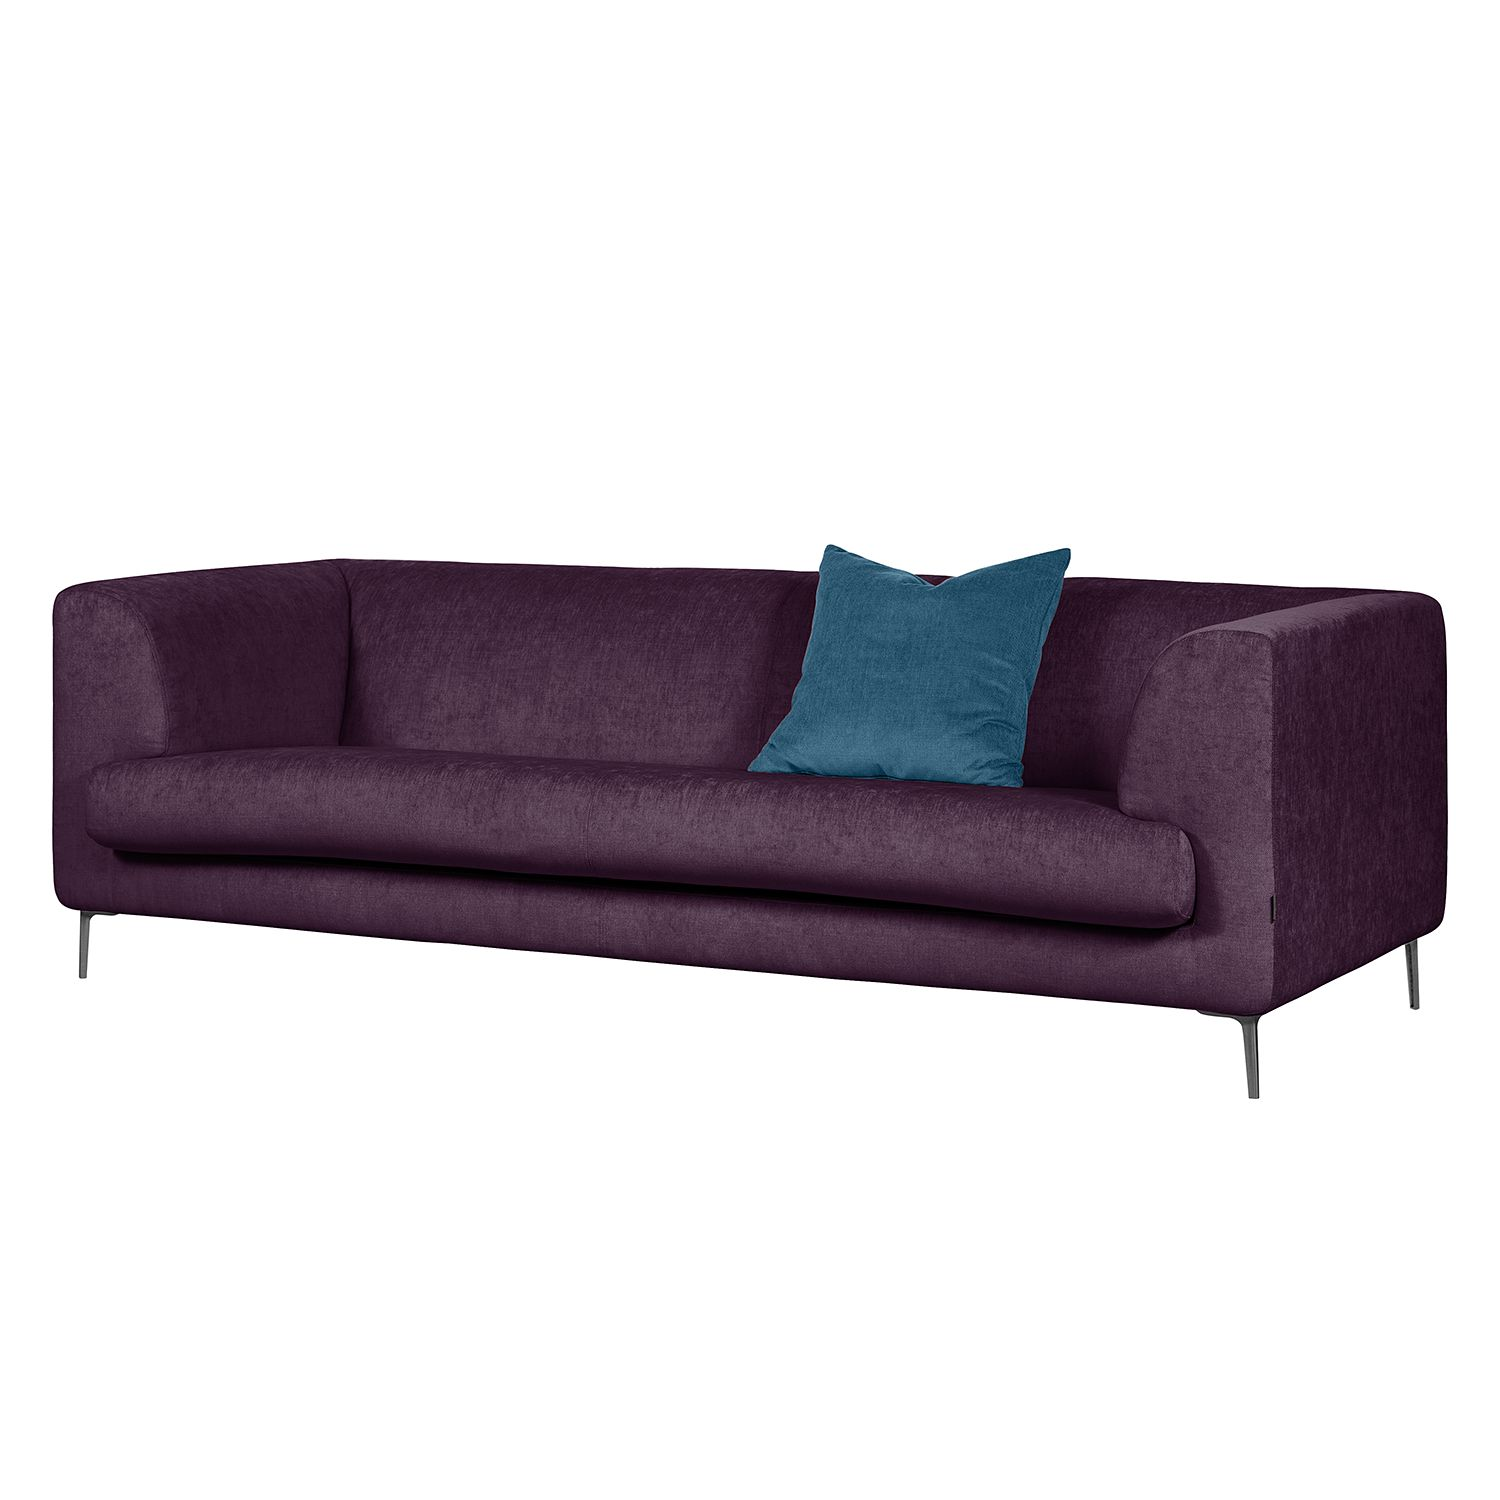 sofa sombret 3 sitzer webstoff aubergine m bel24 online. Black Bedroom Furniture Sets. Home Design Ideas